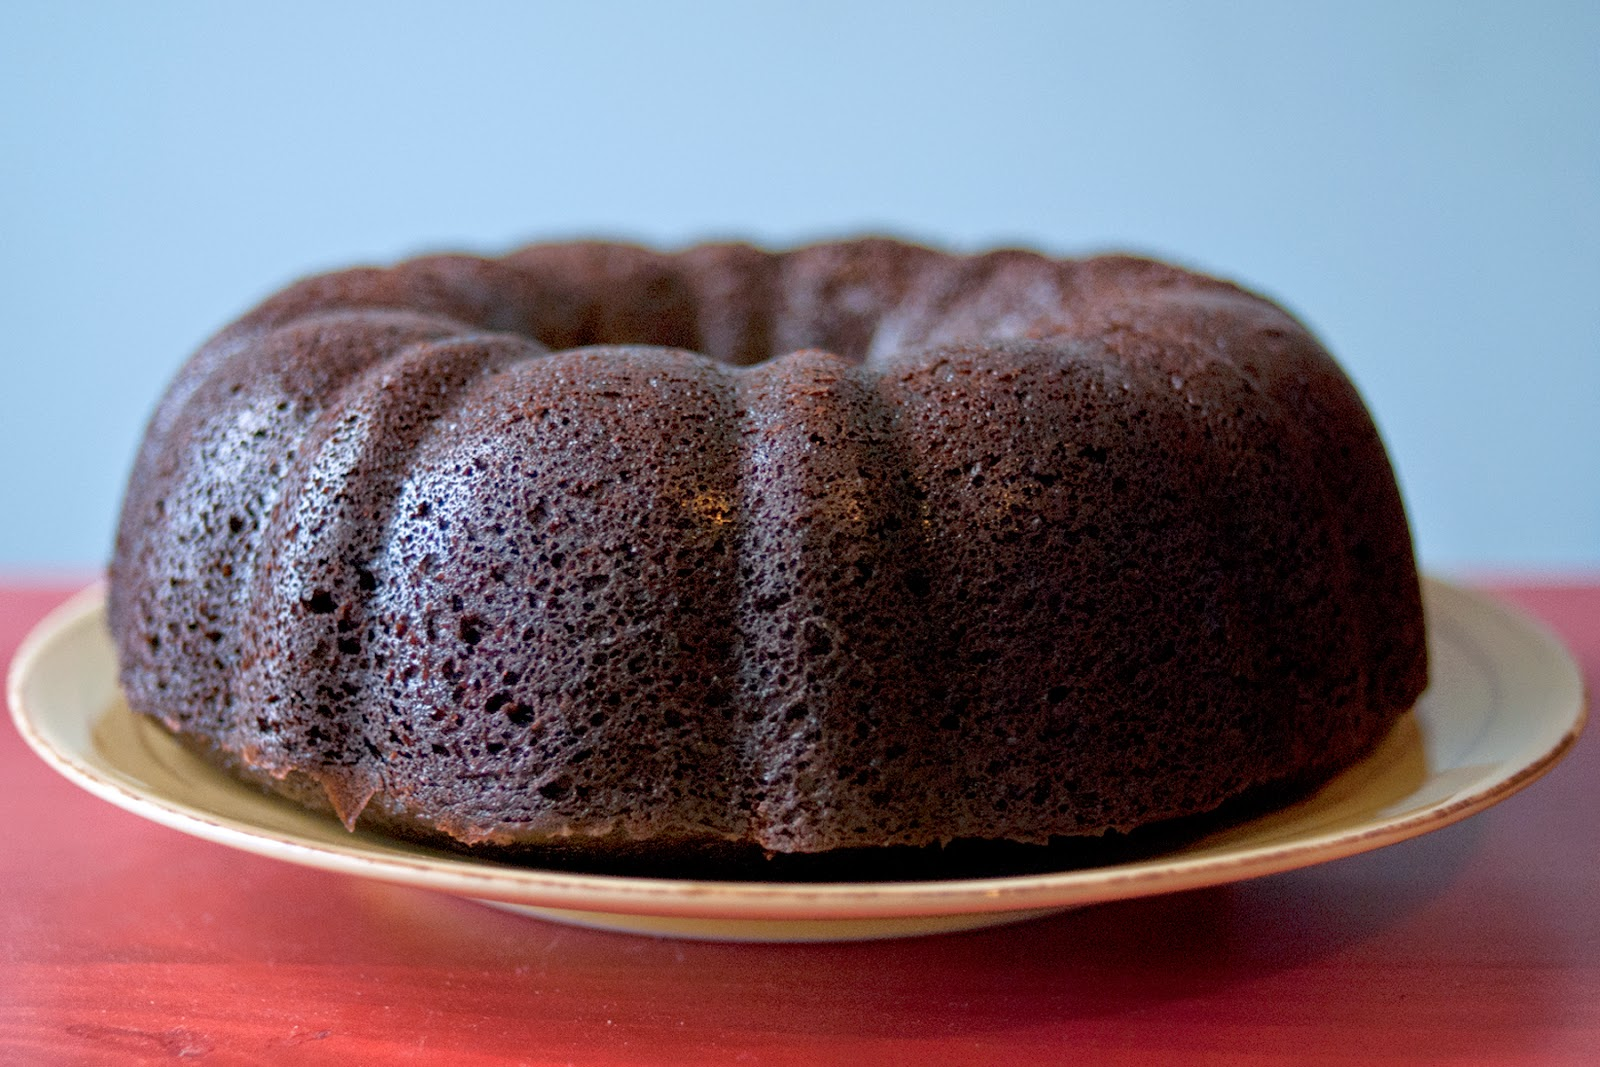 ... molasses biscuits dark damp molasses cake 12 dark damp molasses cake 3